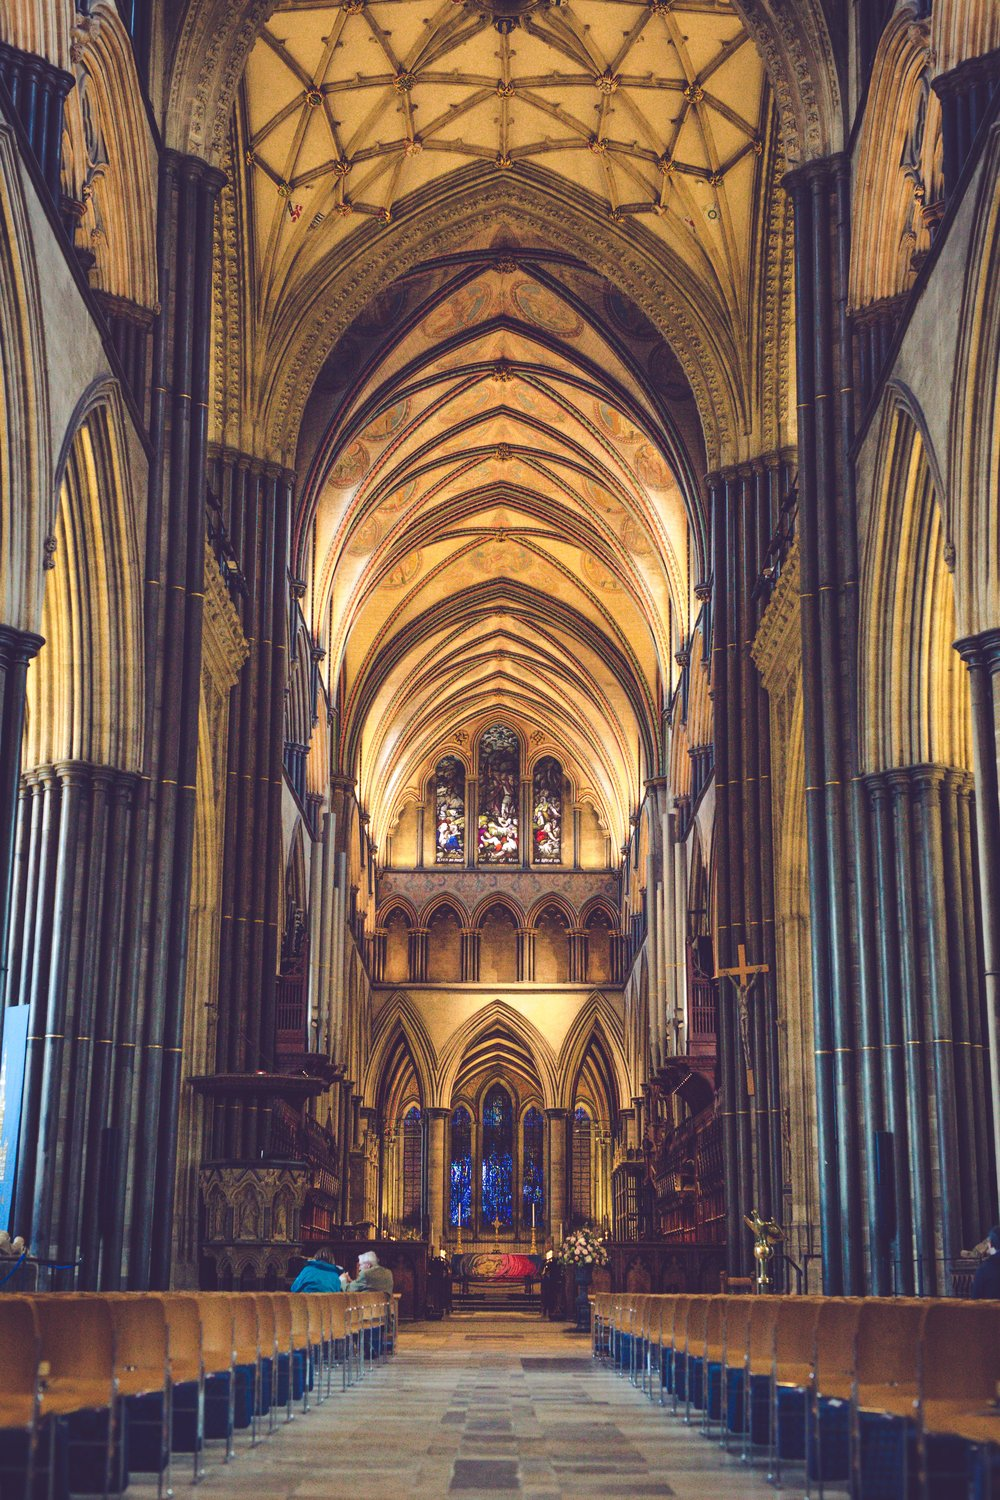 Even though I was really pushing a countryside yurt, we stayed in Salisbury on our first proper day off. The tallest church spire in the UK resides in this chilled town. So instead of a picture of the spire here's one of the inside. For all the horrors that religion has created, the architecture is regularly mind boggling.